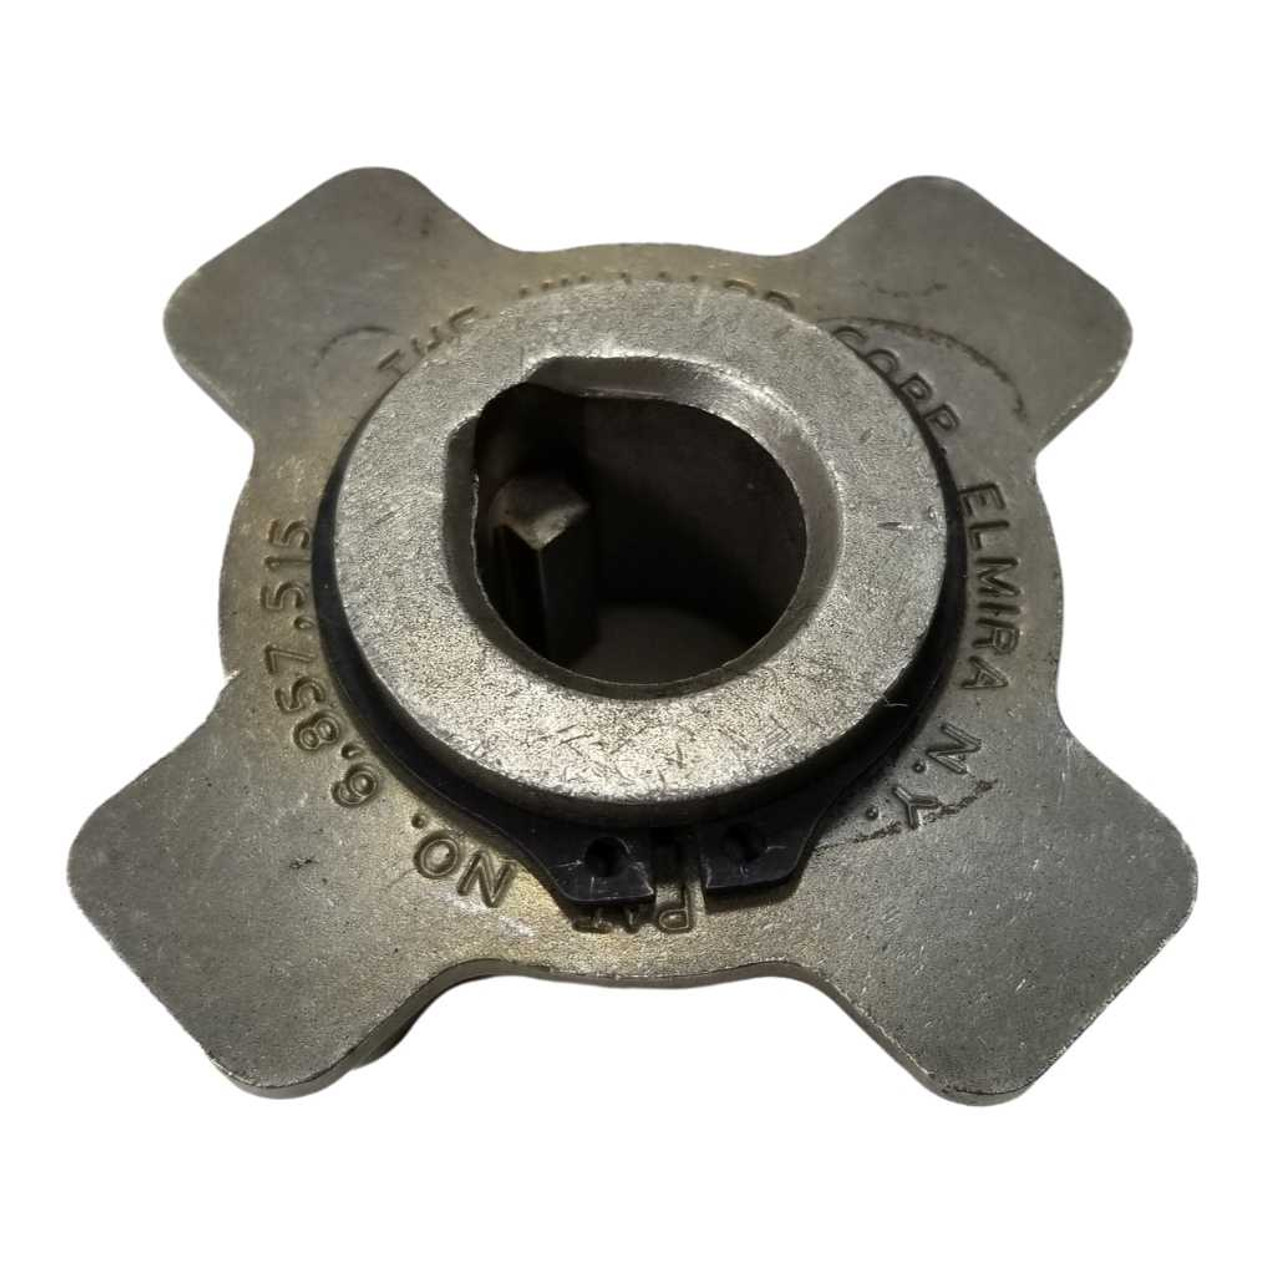 Hilliard Fire Heat Treated Racing Hub 2